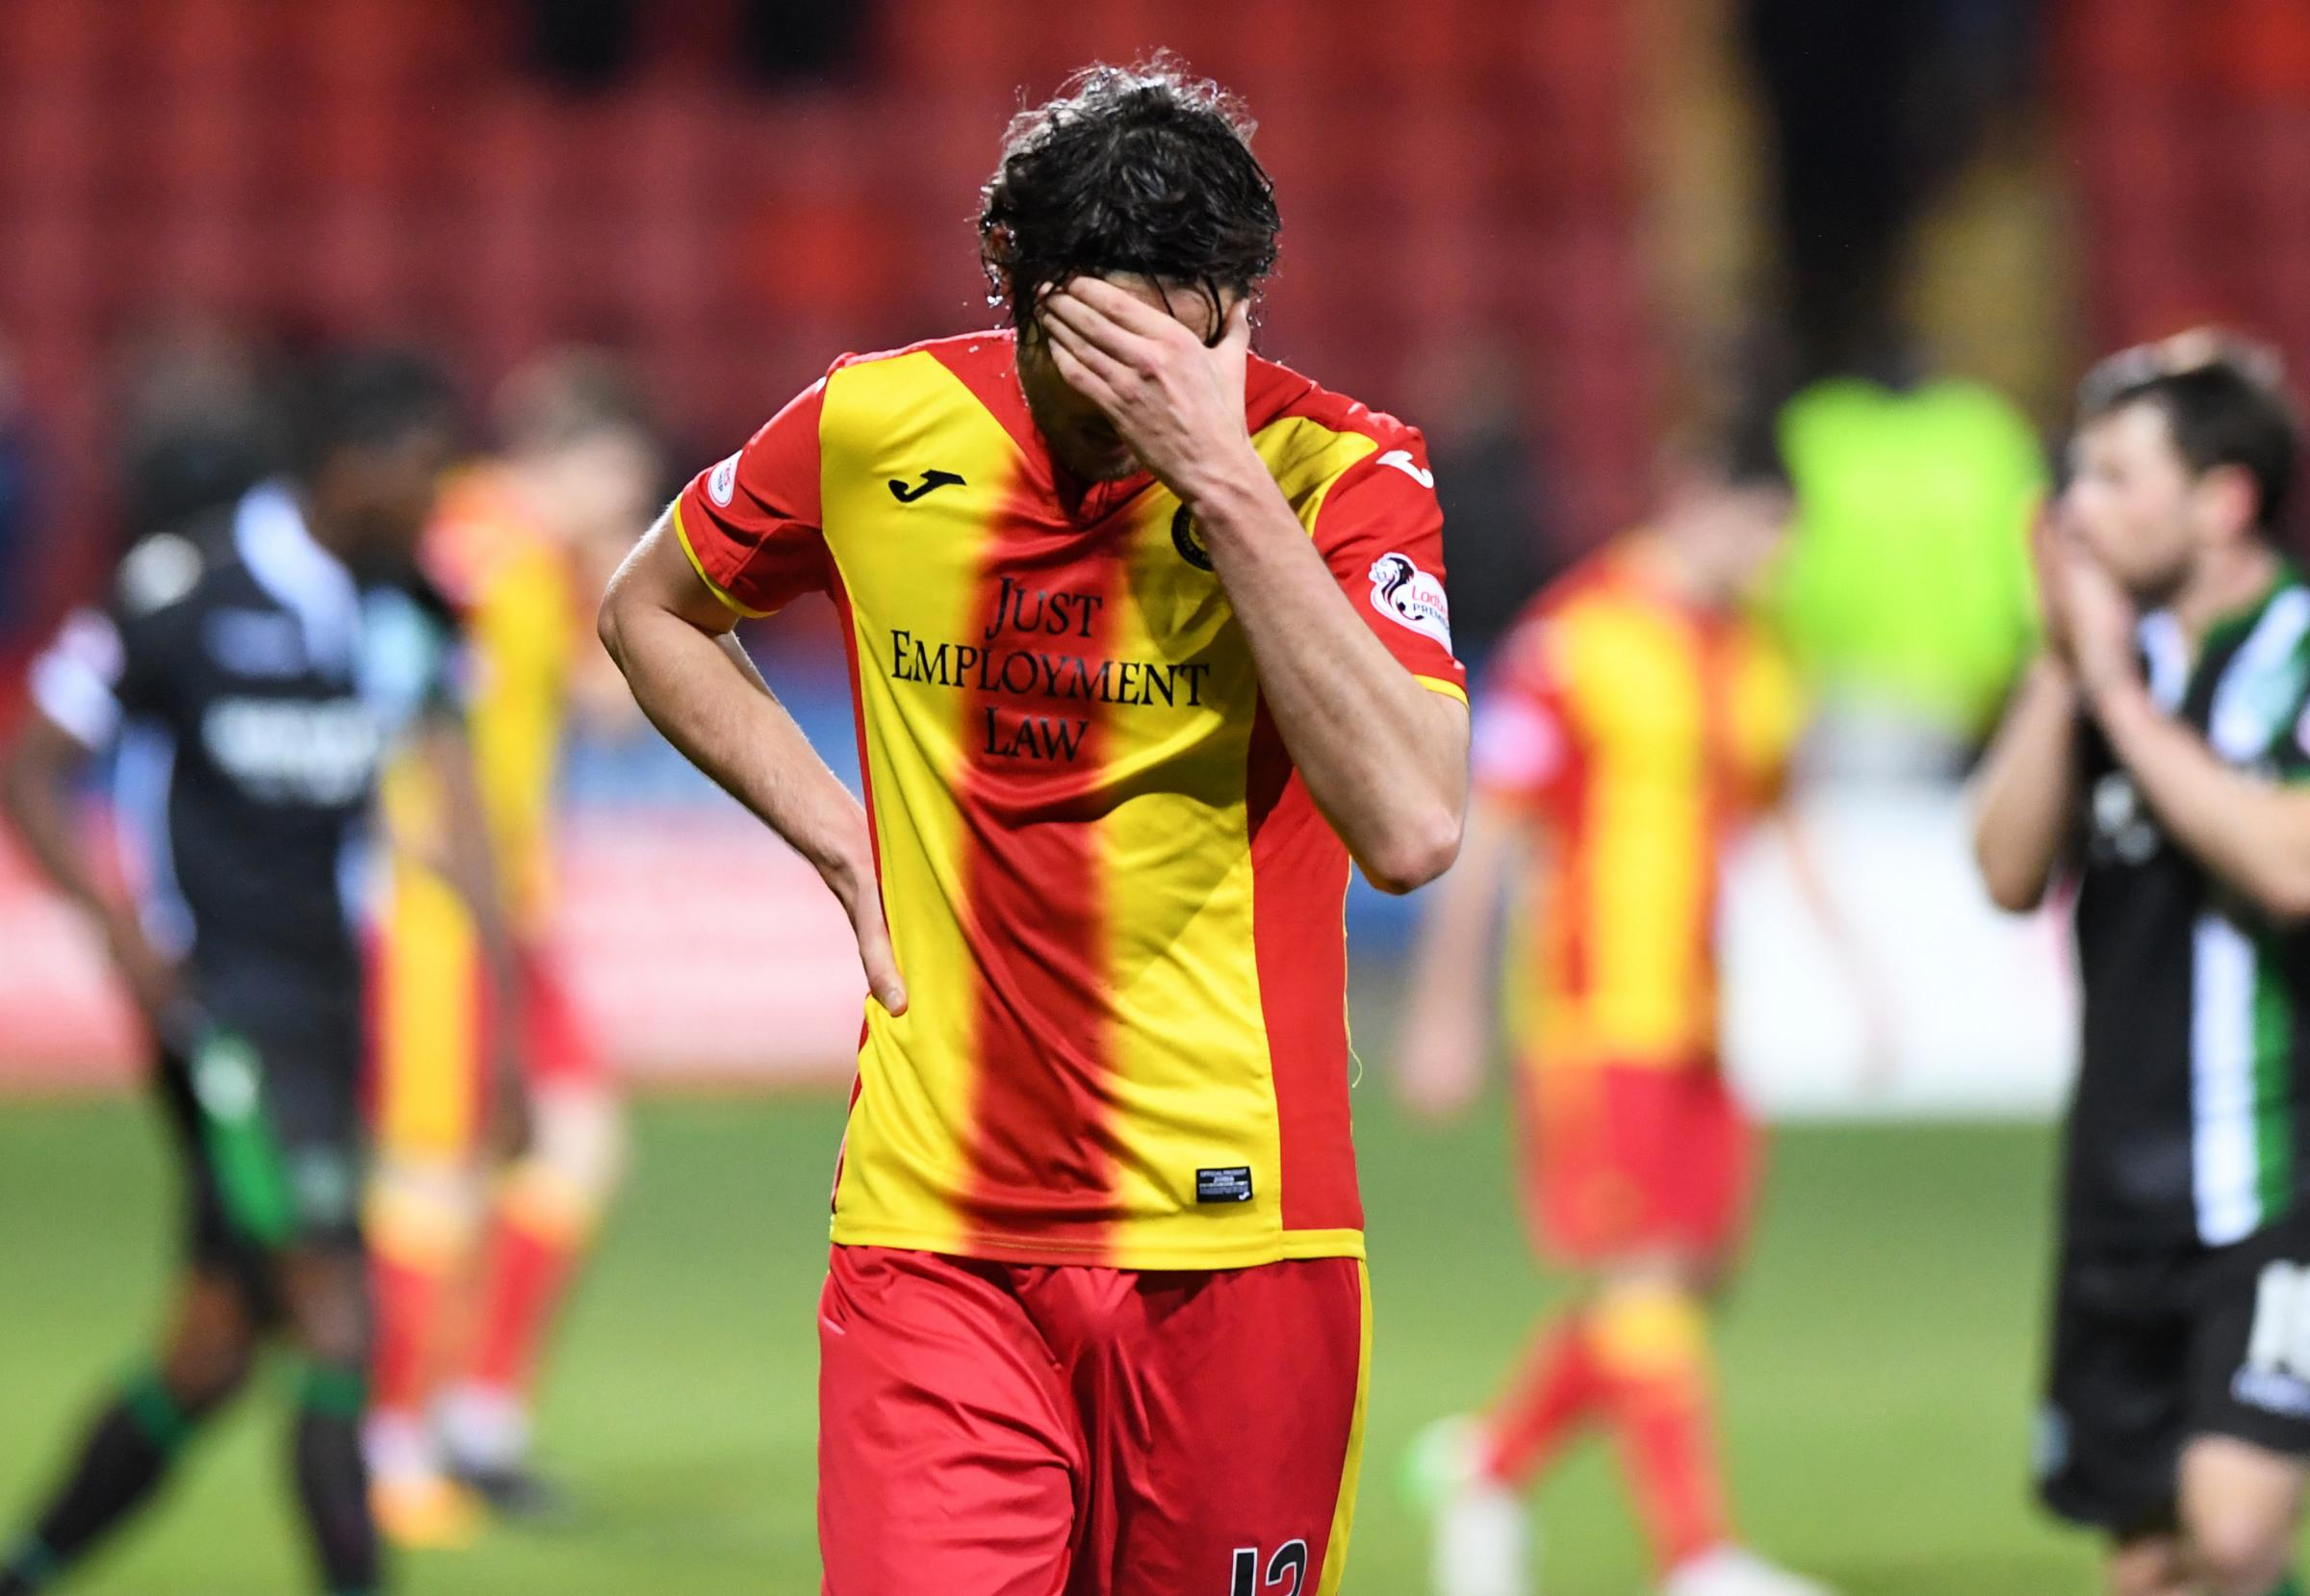 Down and out: Adam Barton's reaction to defeat at Dundee sums up Partick Thistle's mood (Picture: SNS)